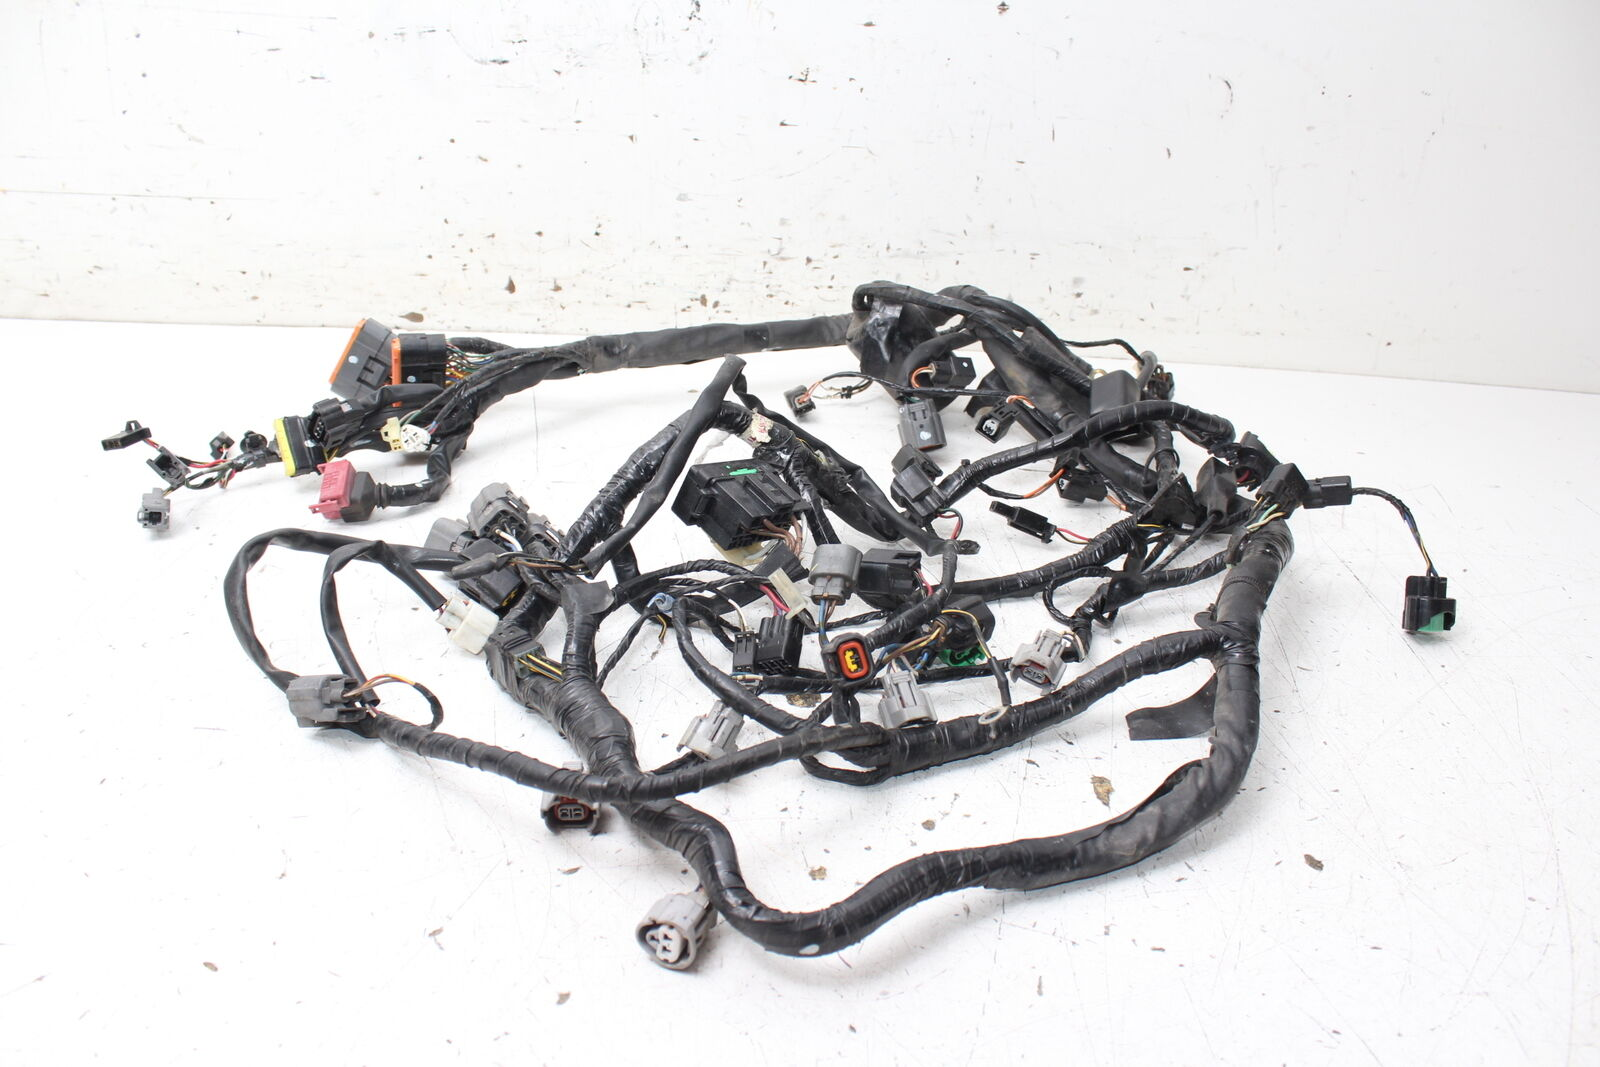 07 08 Kawasaki Ninja Zx6r Zx600p Main Engine Wiring Harness Motor 250 Wire Loom 1 Of 7only Available See More